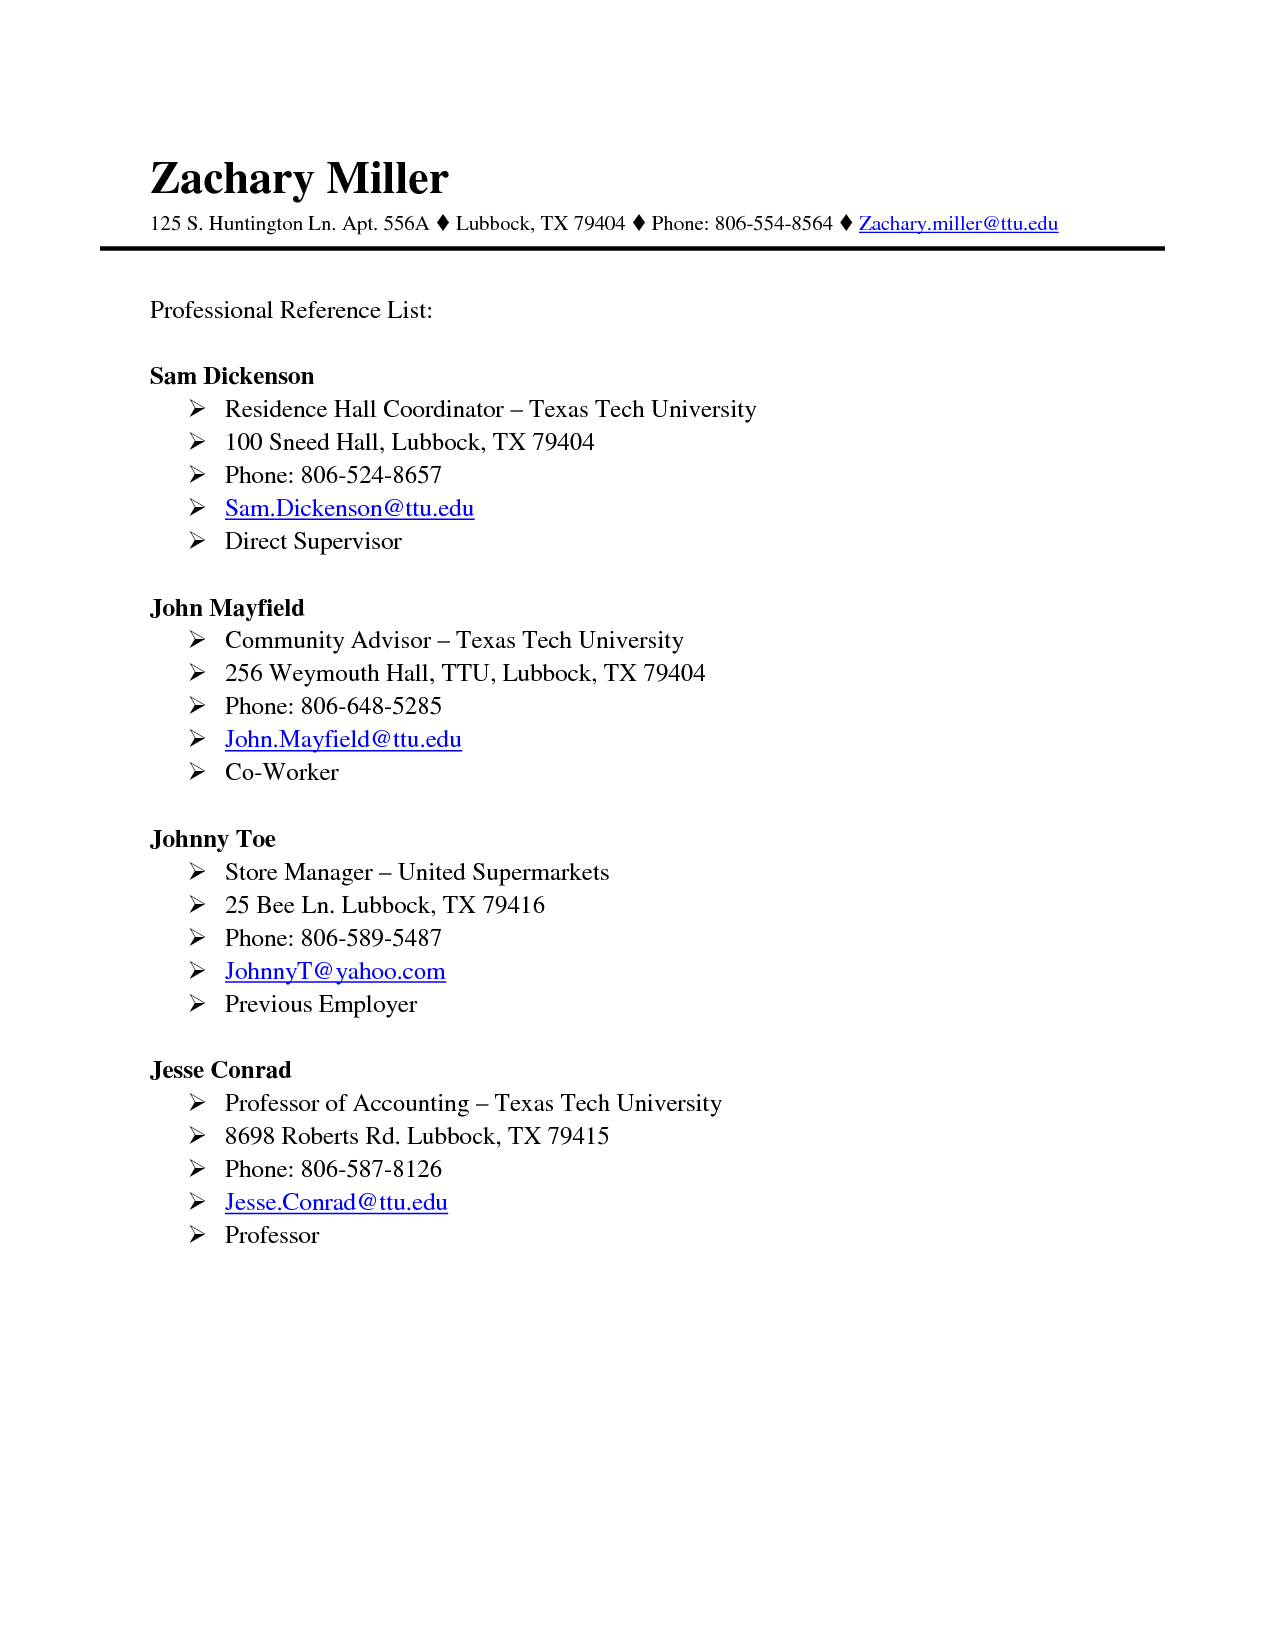 How To Write Professional References On A Resume Professional References Page Template Http Www